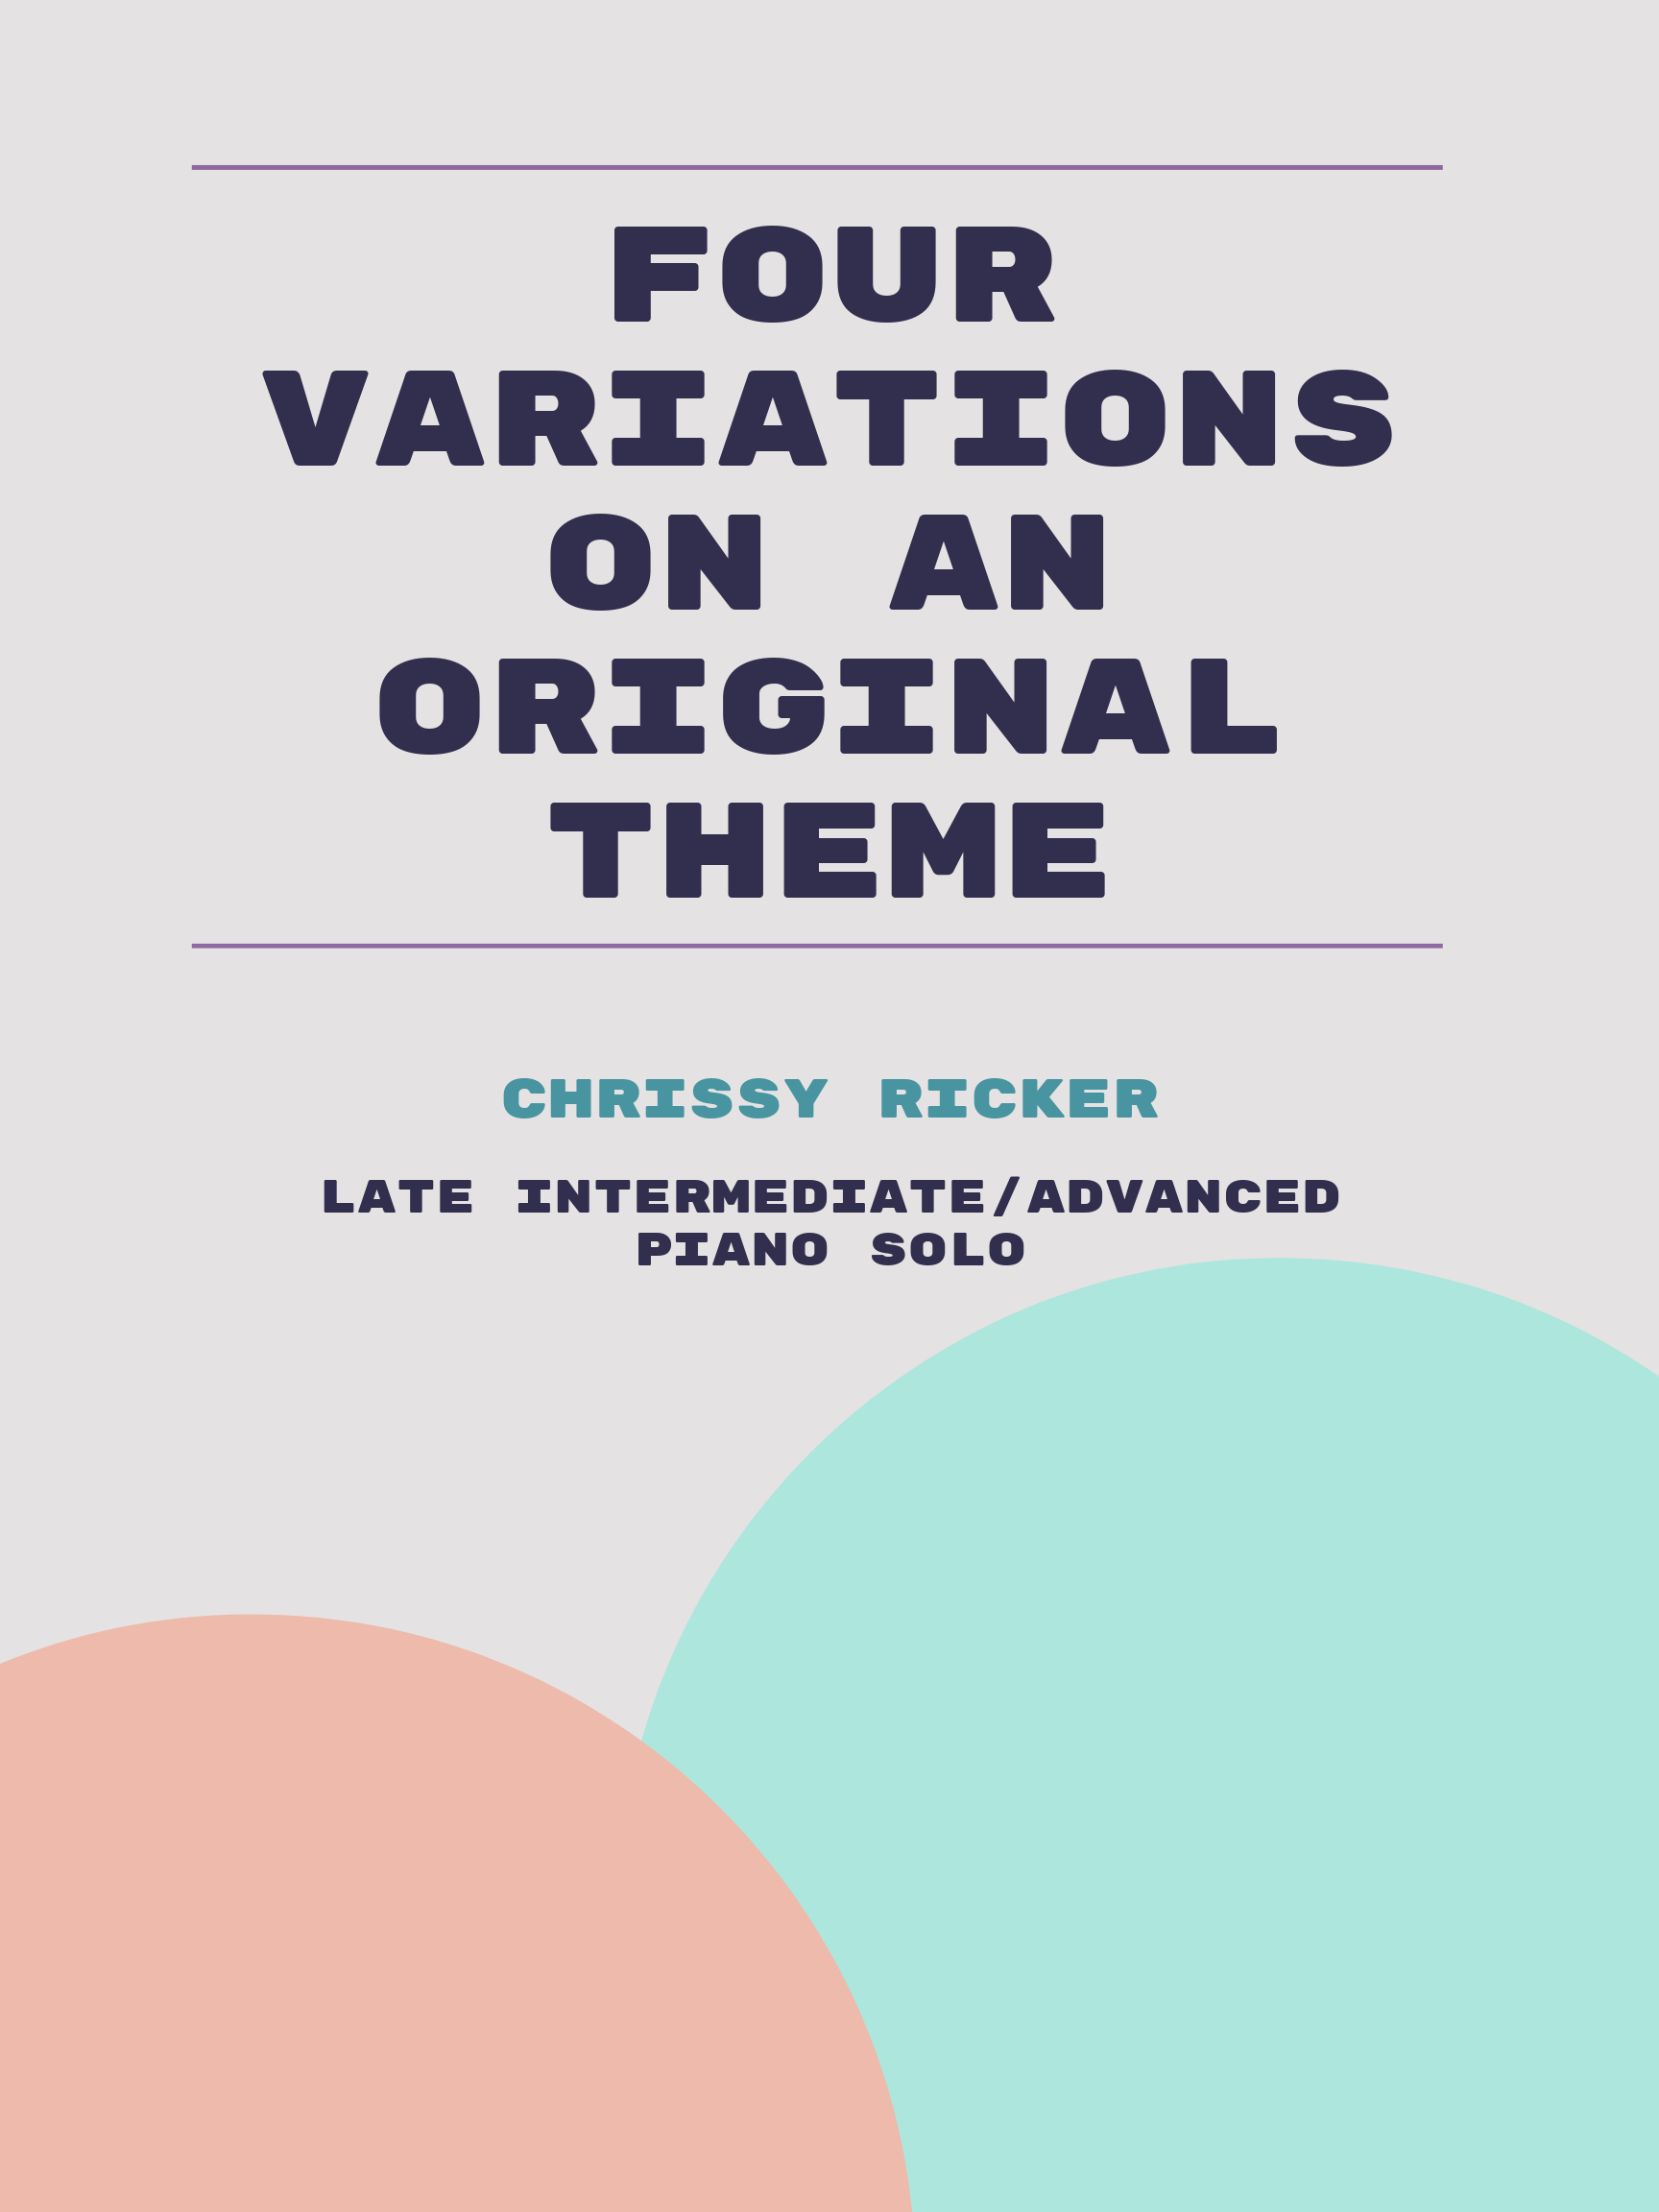 Four Variations on an Original Theme by Chrissy Ricker